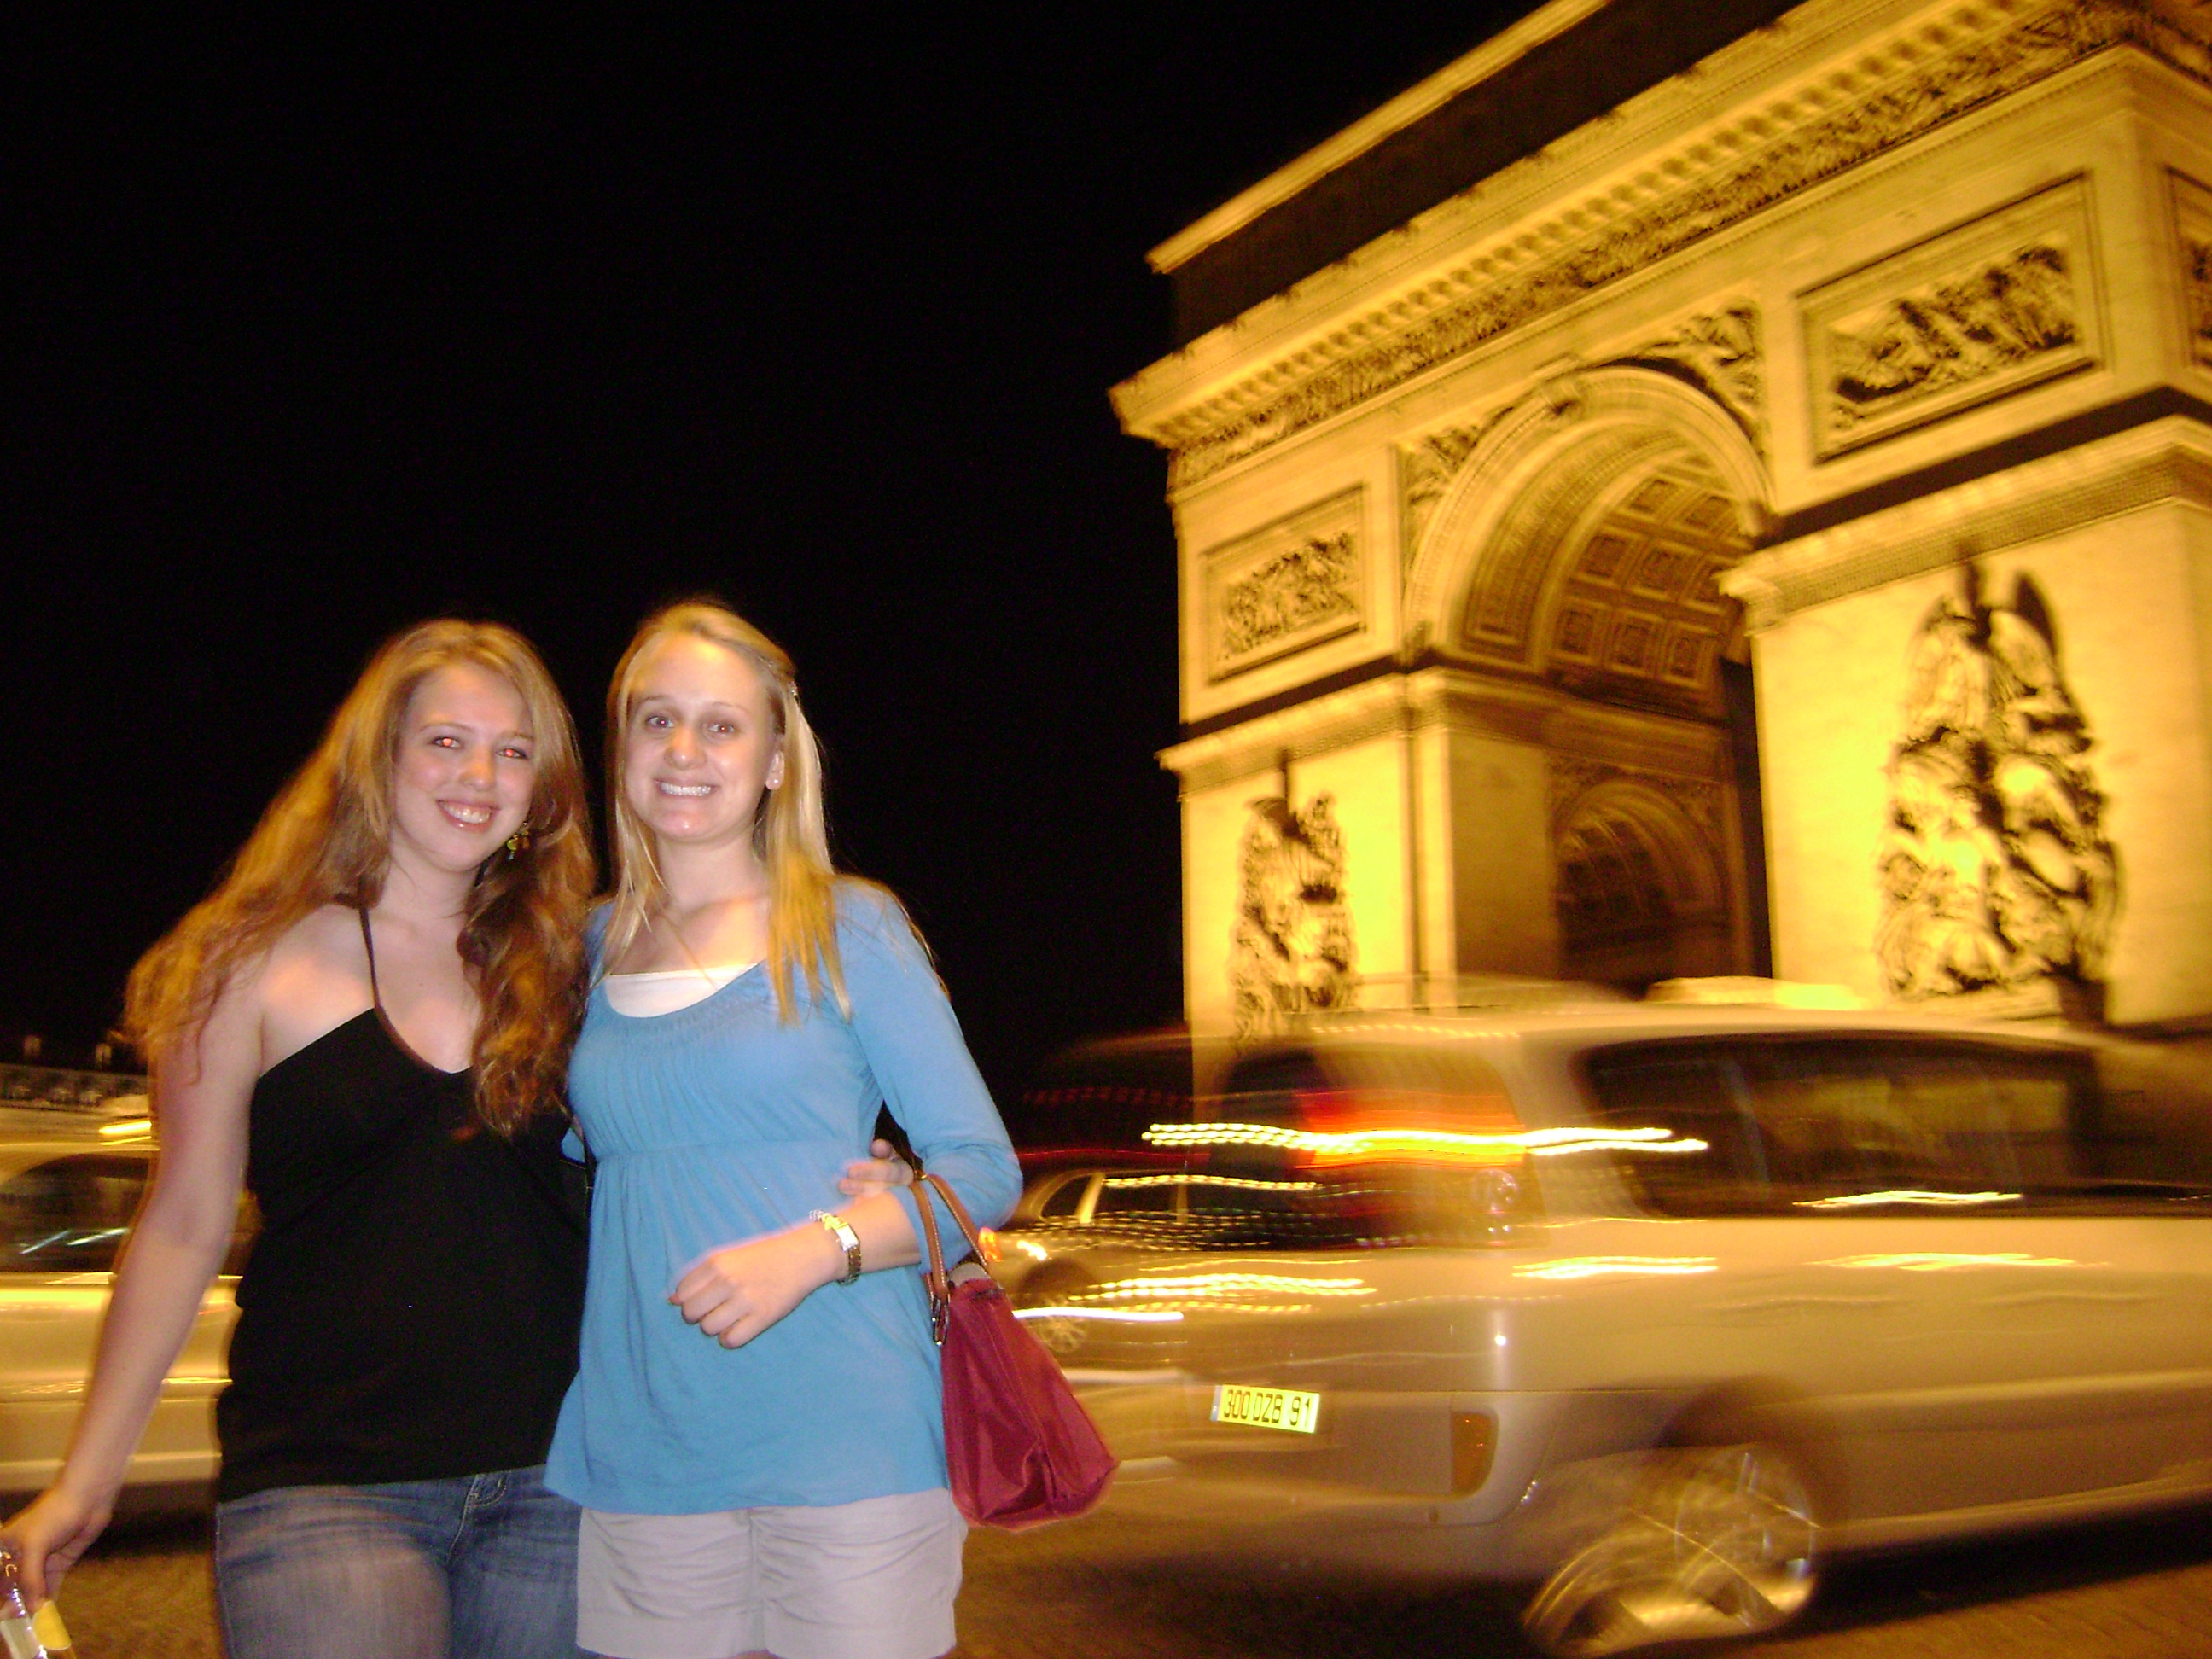 At the Arc de Triomphe at night